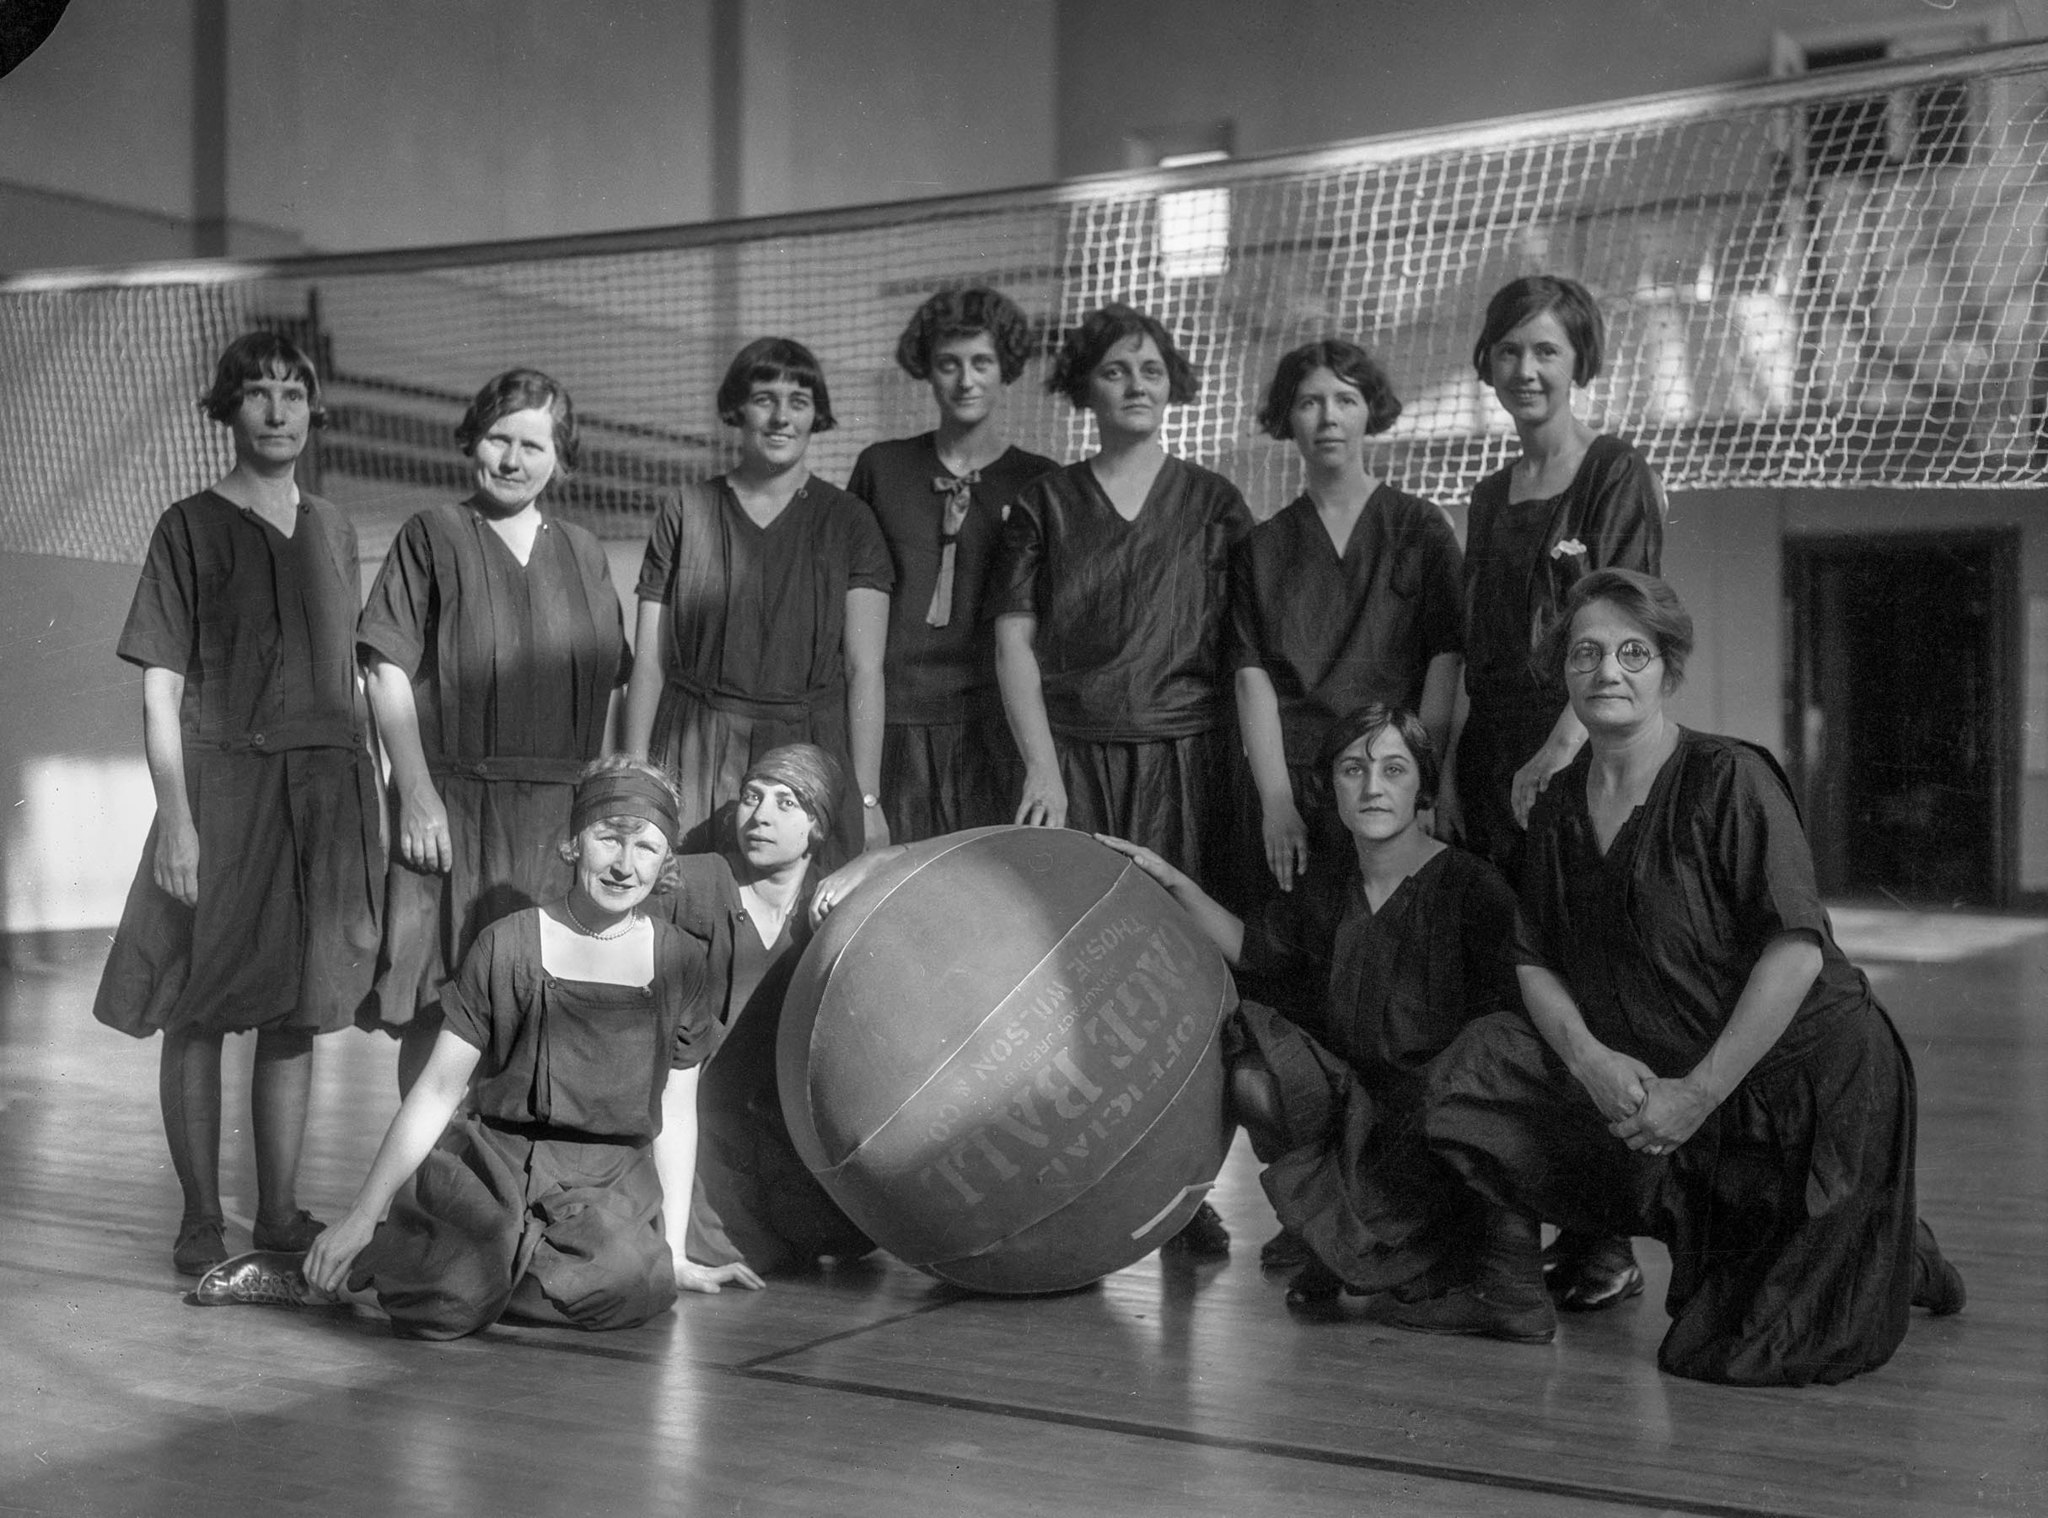 Feb. 16, 1926: A group of cage ball players at the Y.W.C.A., Los Angeles, 1926. This image is from t